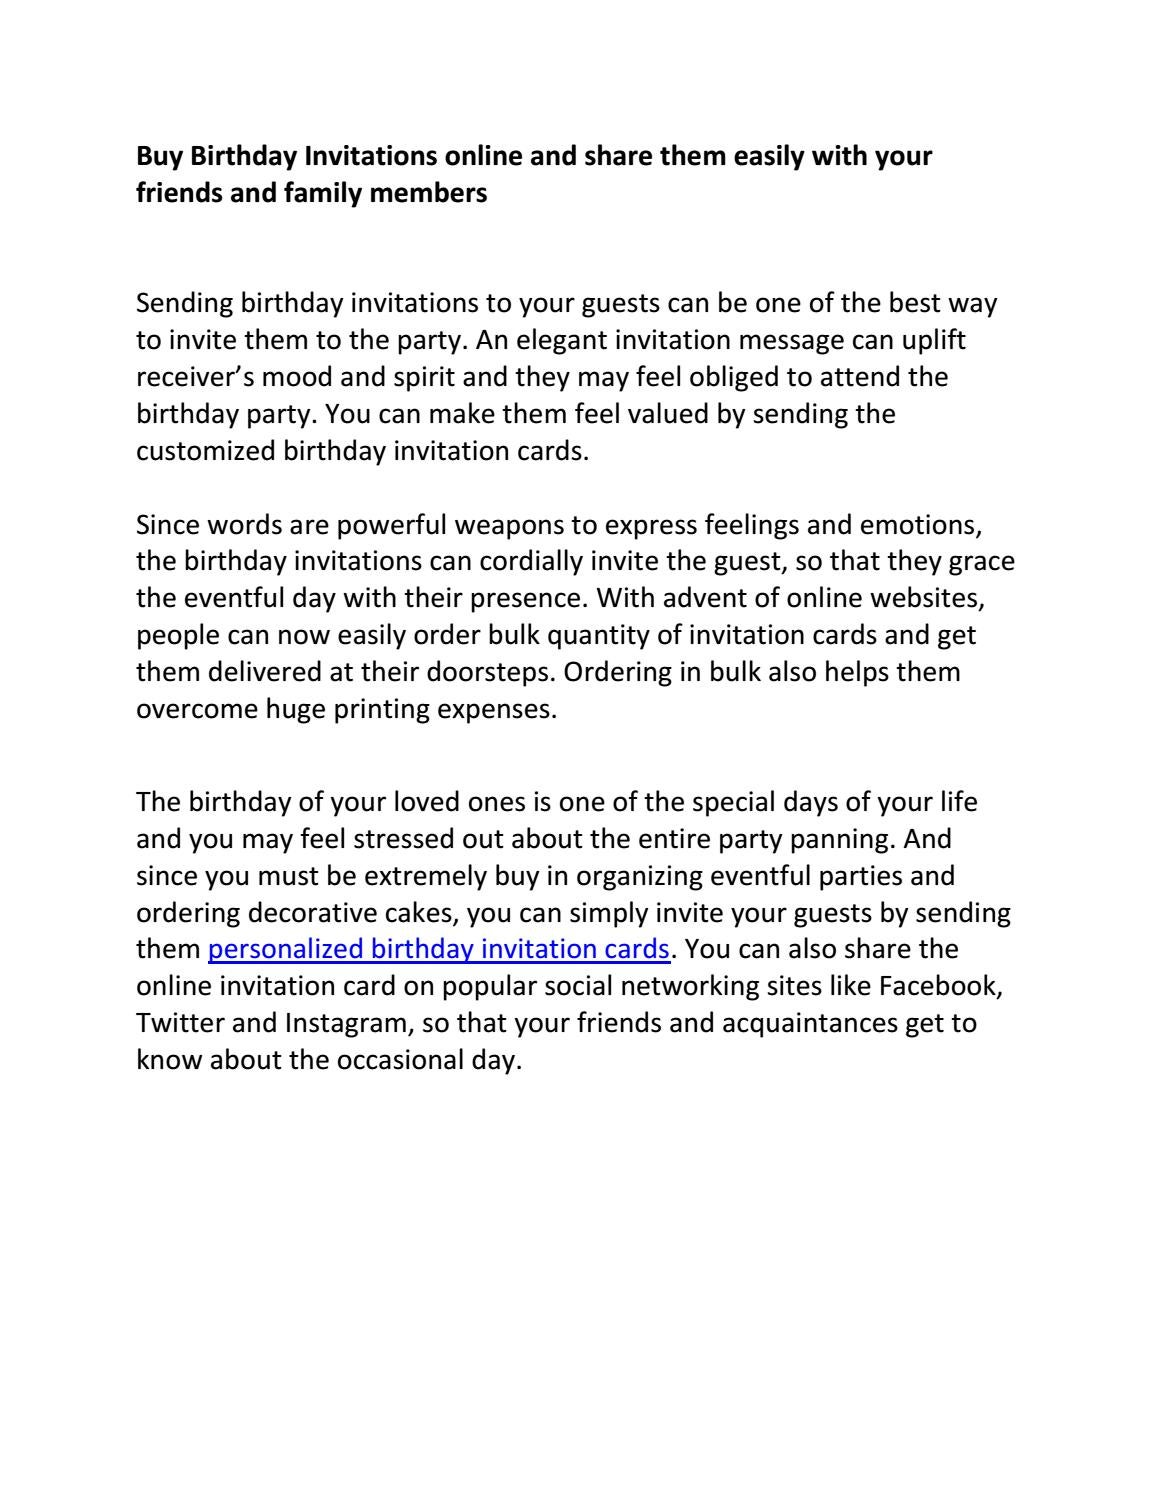 Online birthday invitation - Wedeogram by Wedeogram - issuu